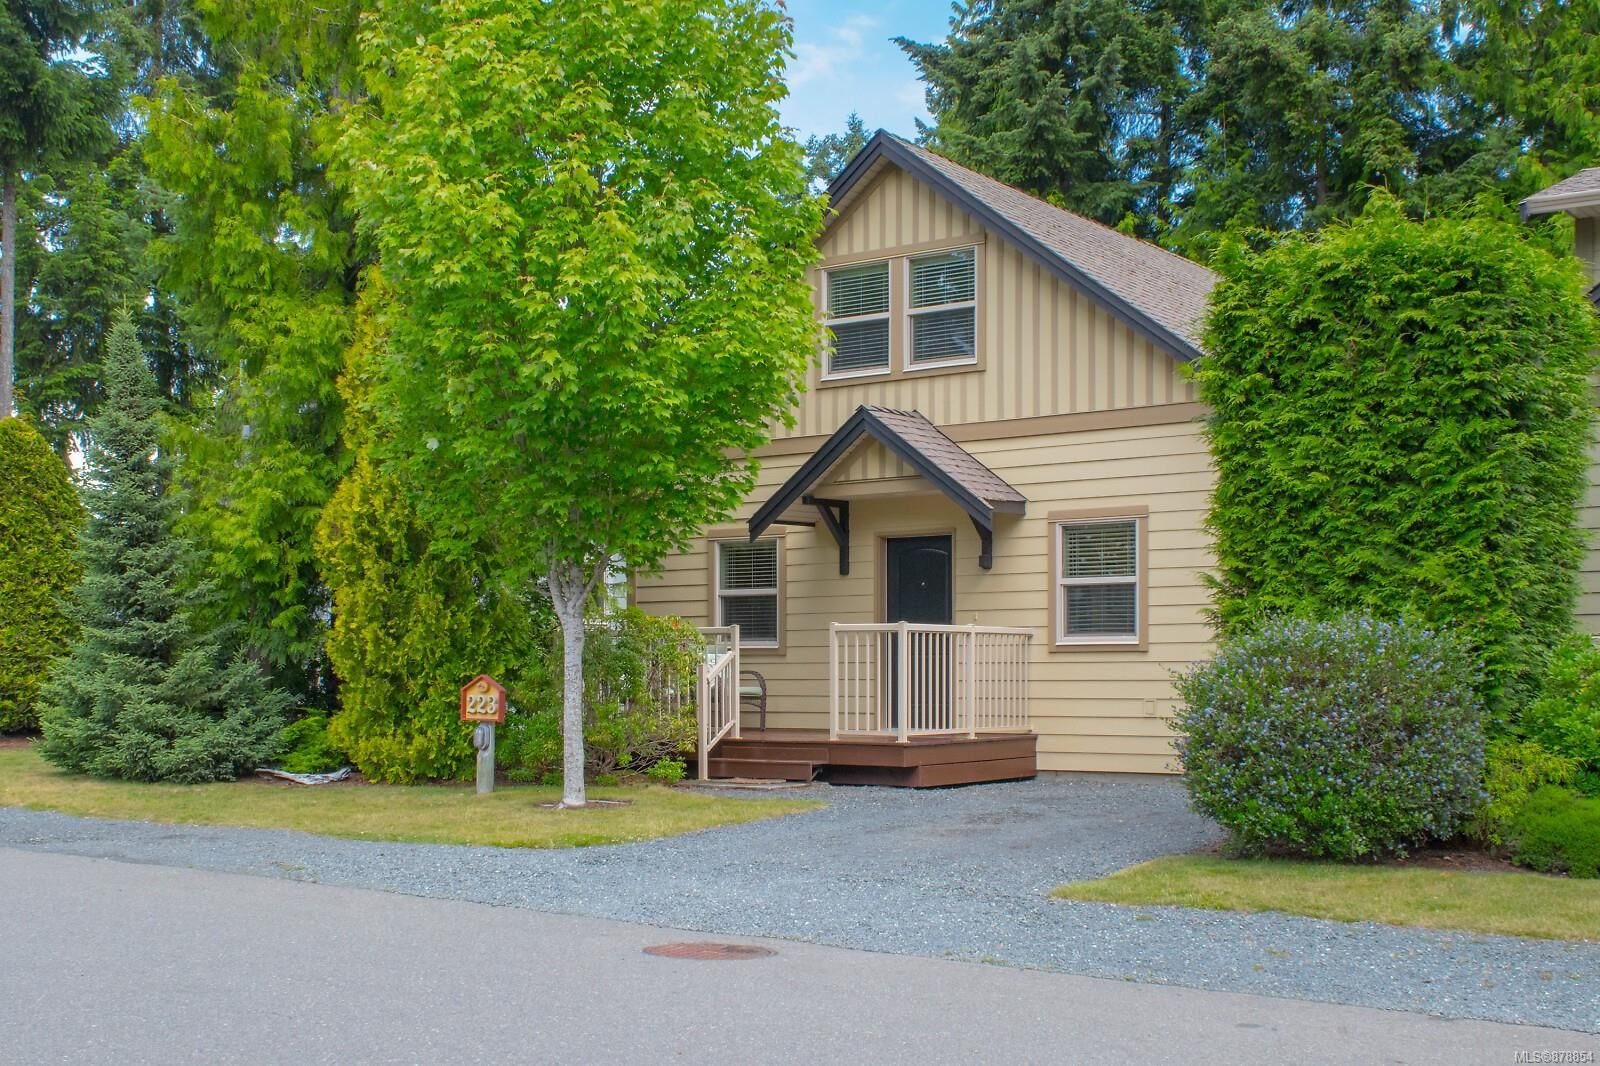 Main Photo: 223 1130 Resort Dr in : PQ Parksville Row/Townhouse for sale (Parksville/Qualicum)  : MLS®# 878854